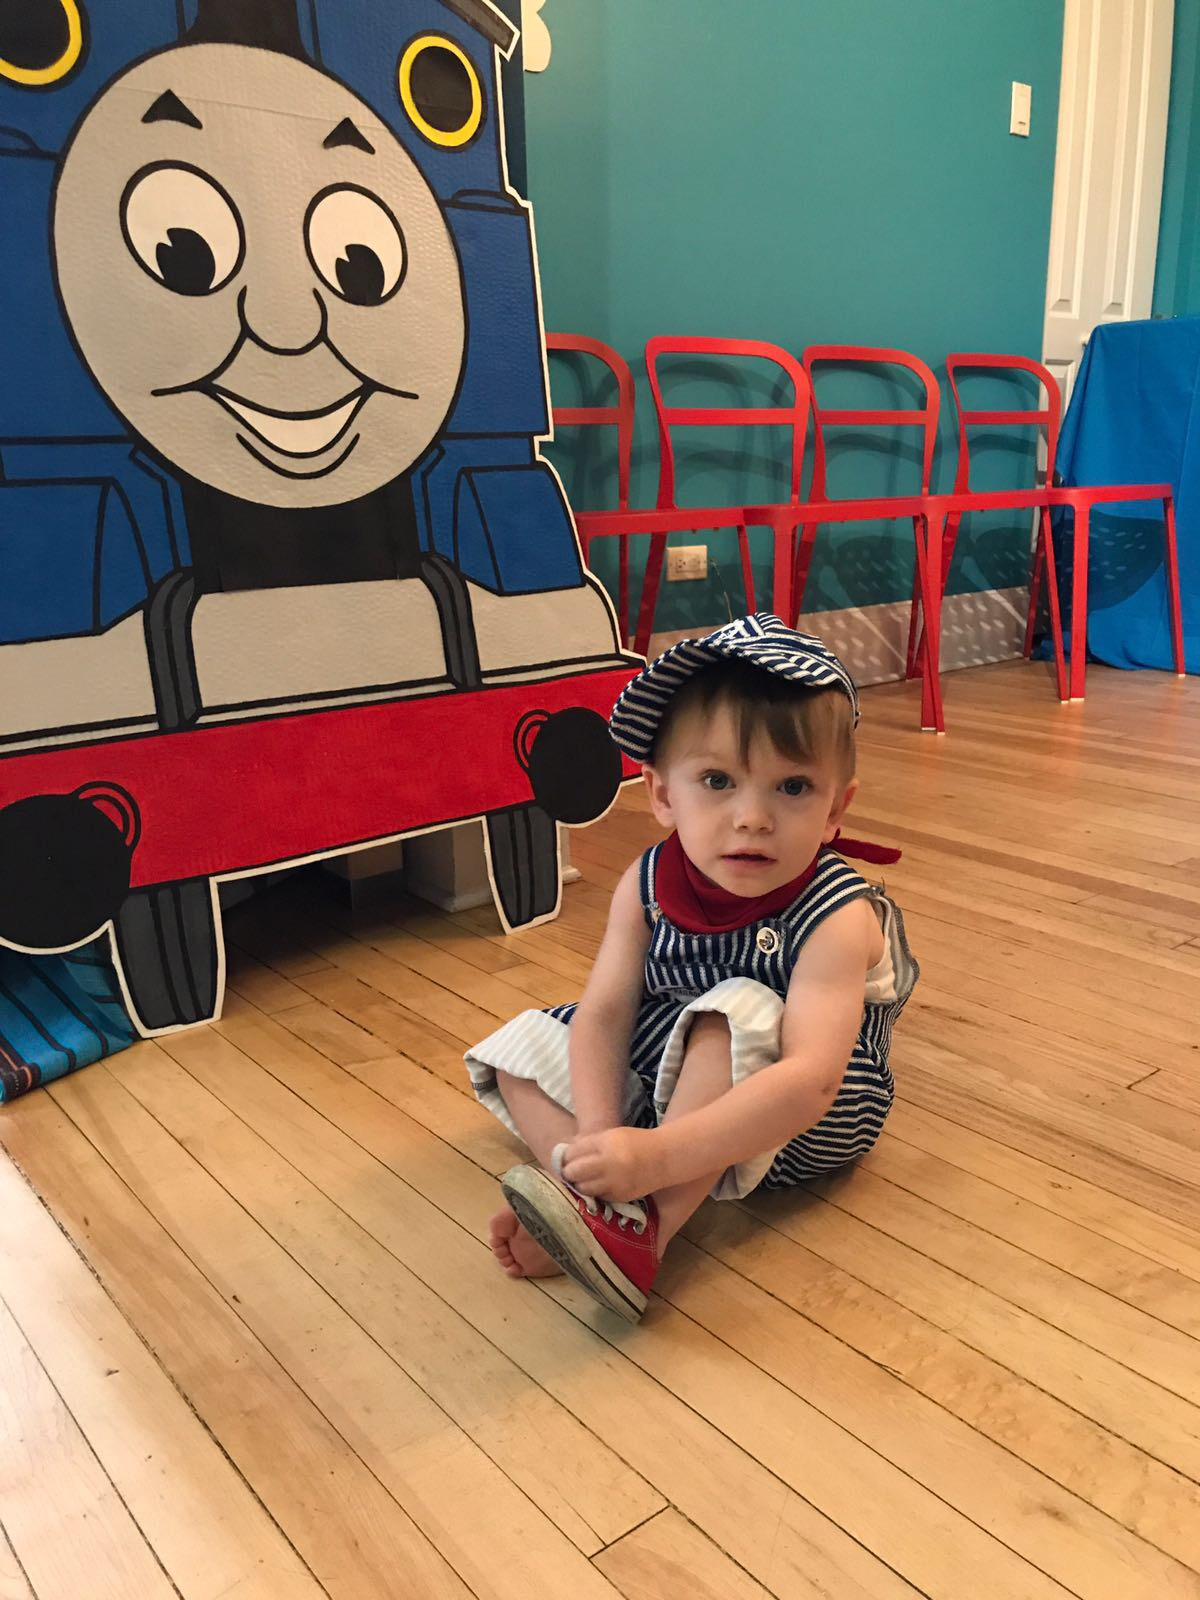 Thomas the Train photo backdrop